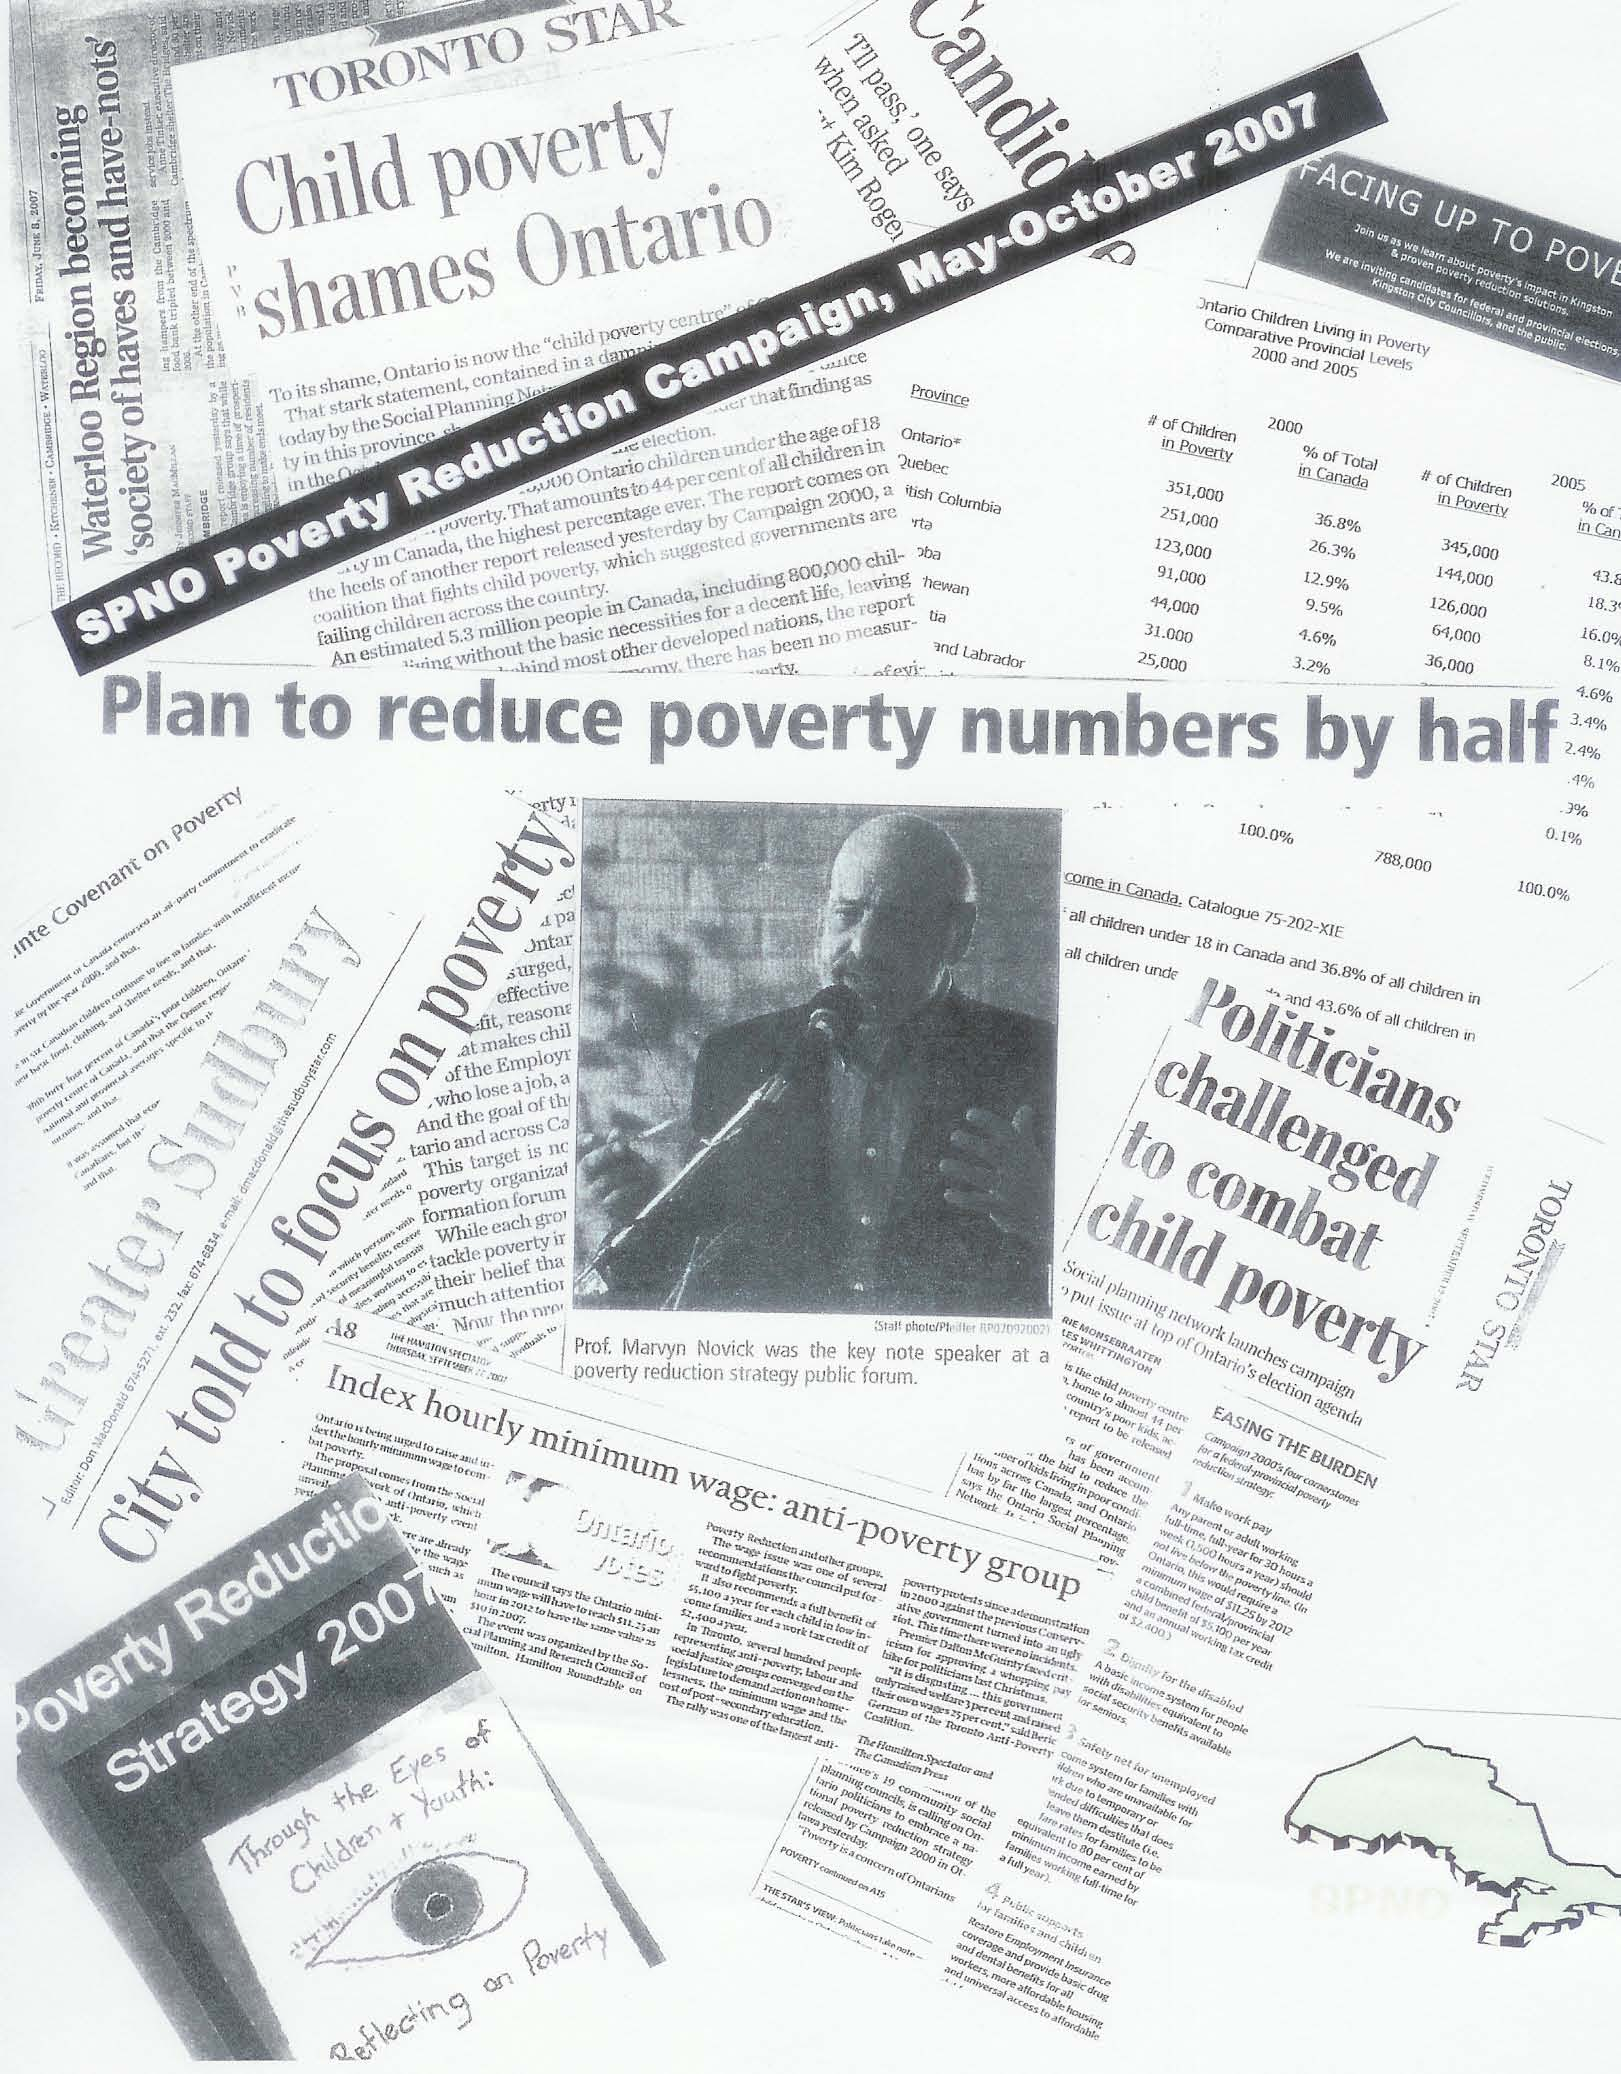 Poverty Reduction Strategy Campaign Collage 2007